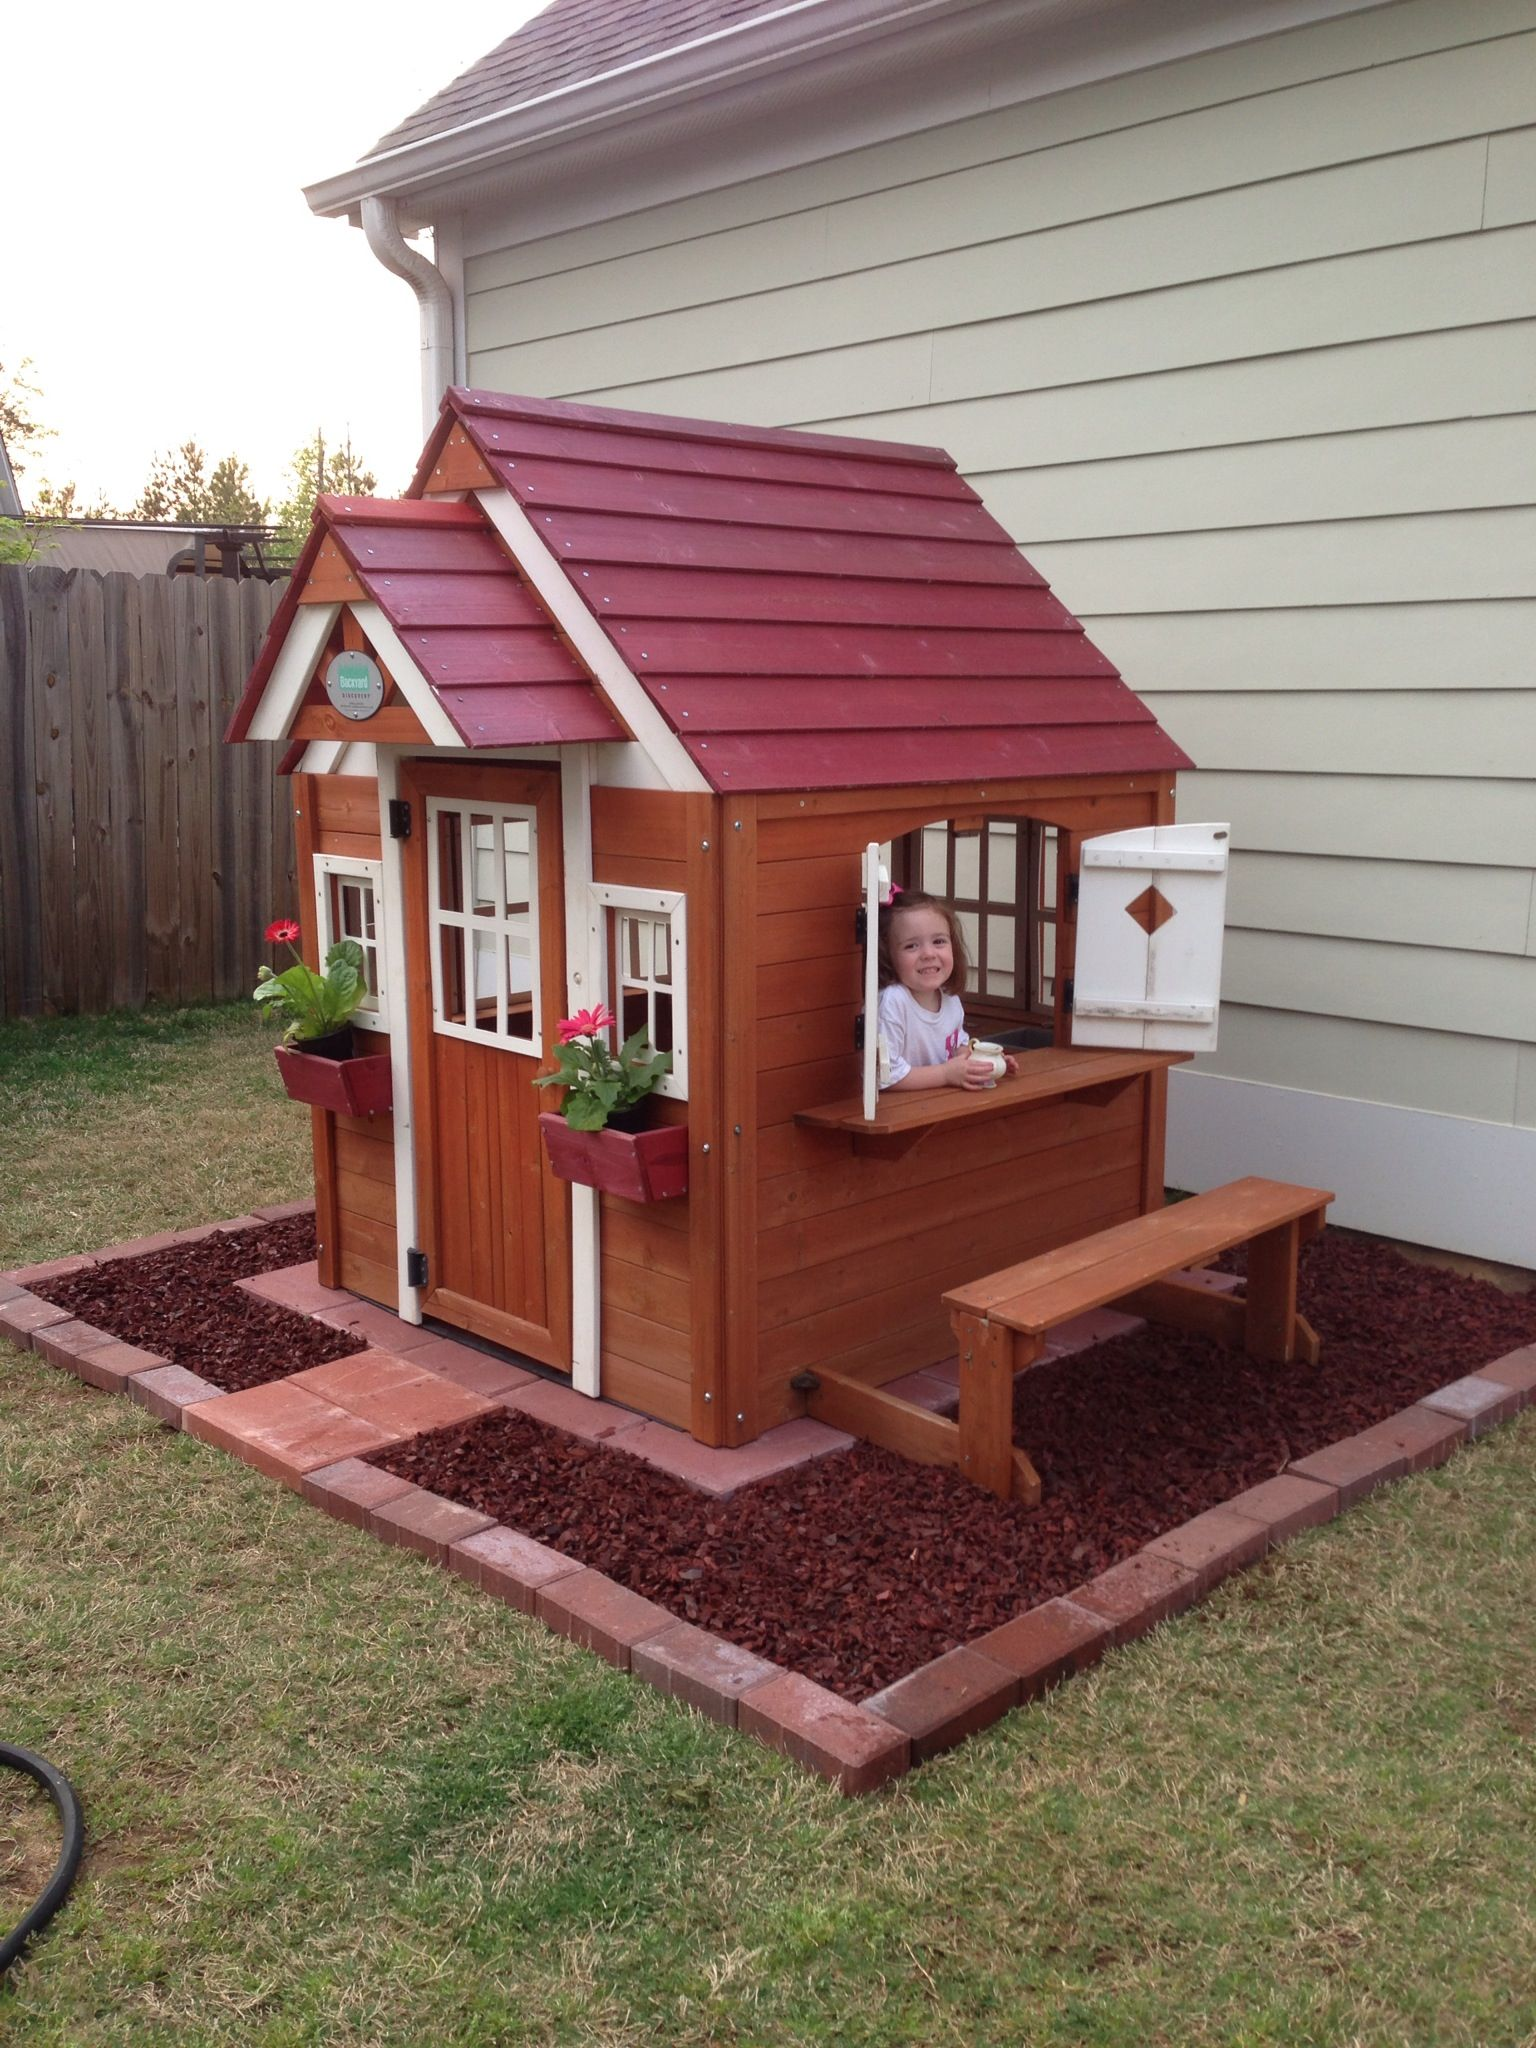 Lovely Playhouse Idea!! Had So Much Fun Doing It!